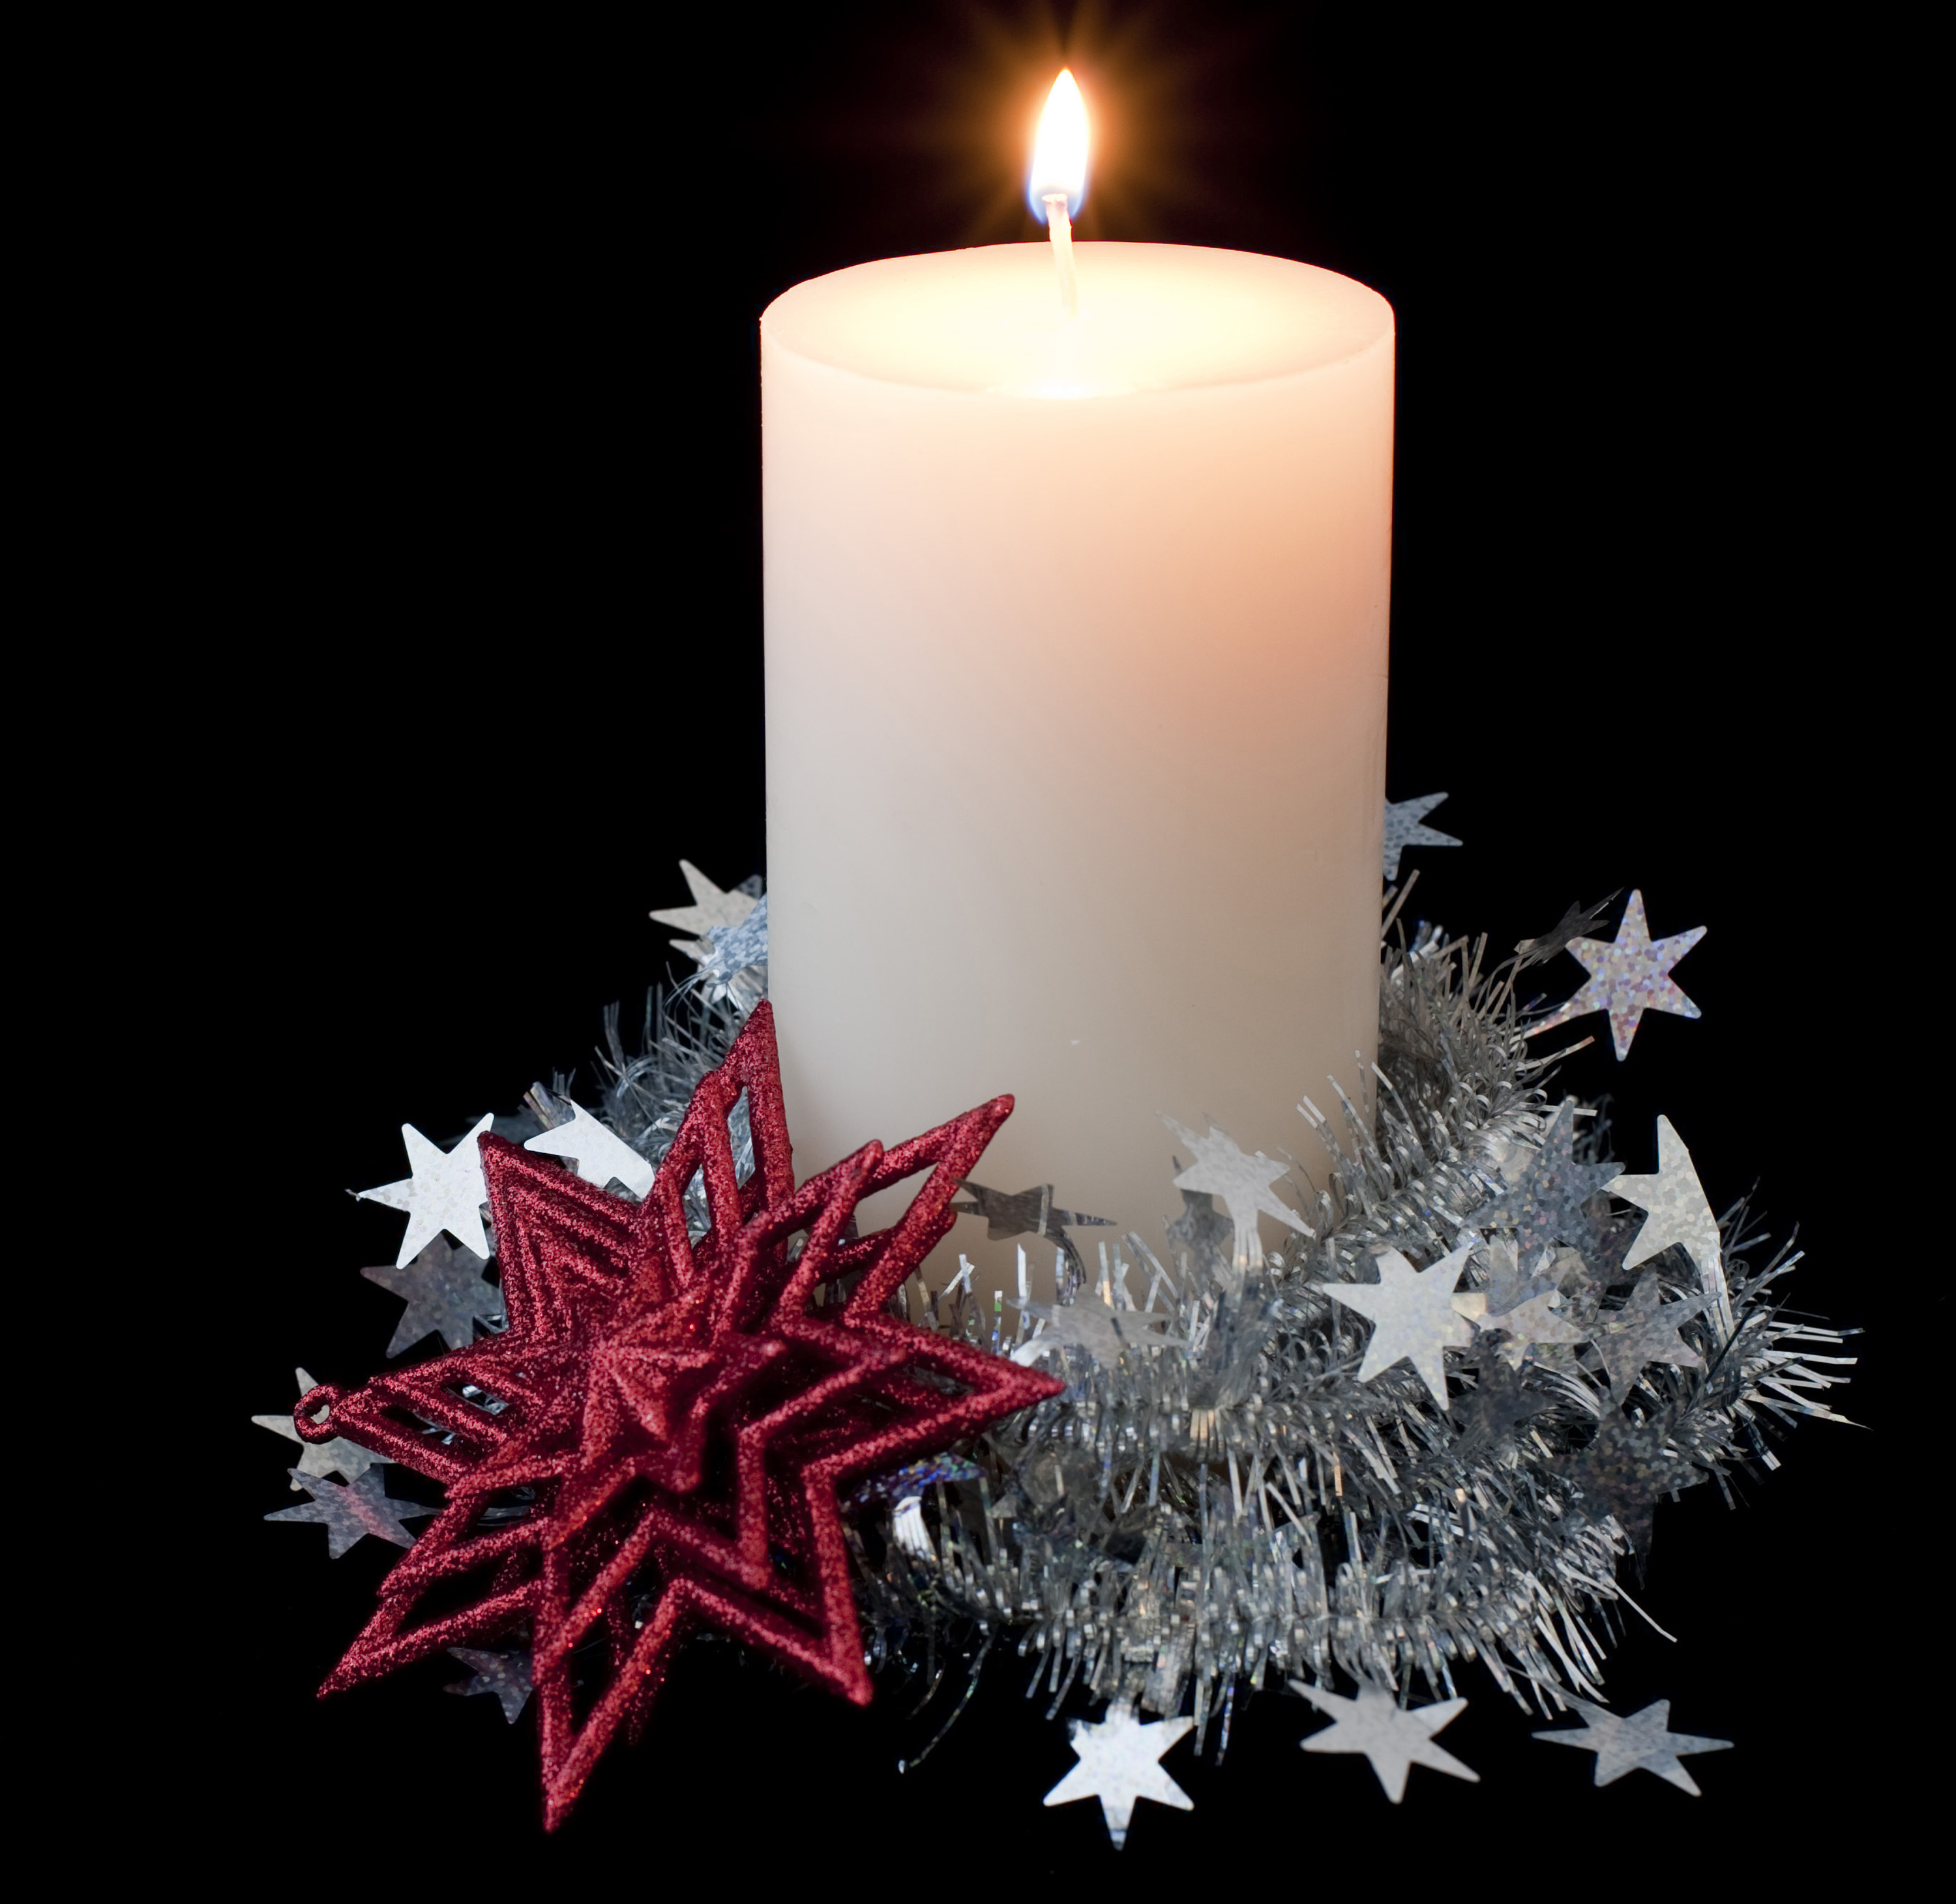 Candle Centerpieces For Kitchen Tables